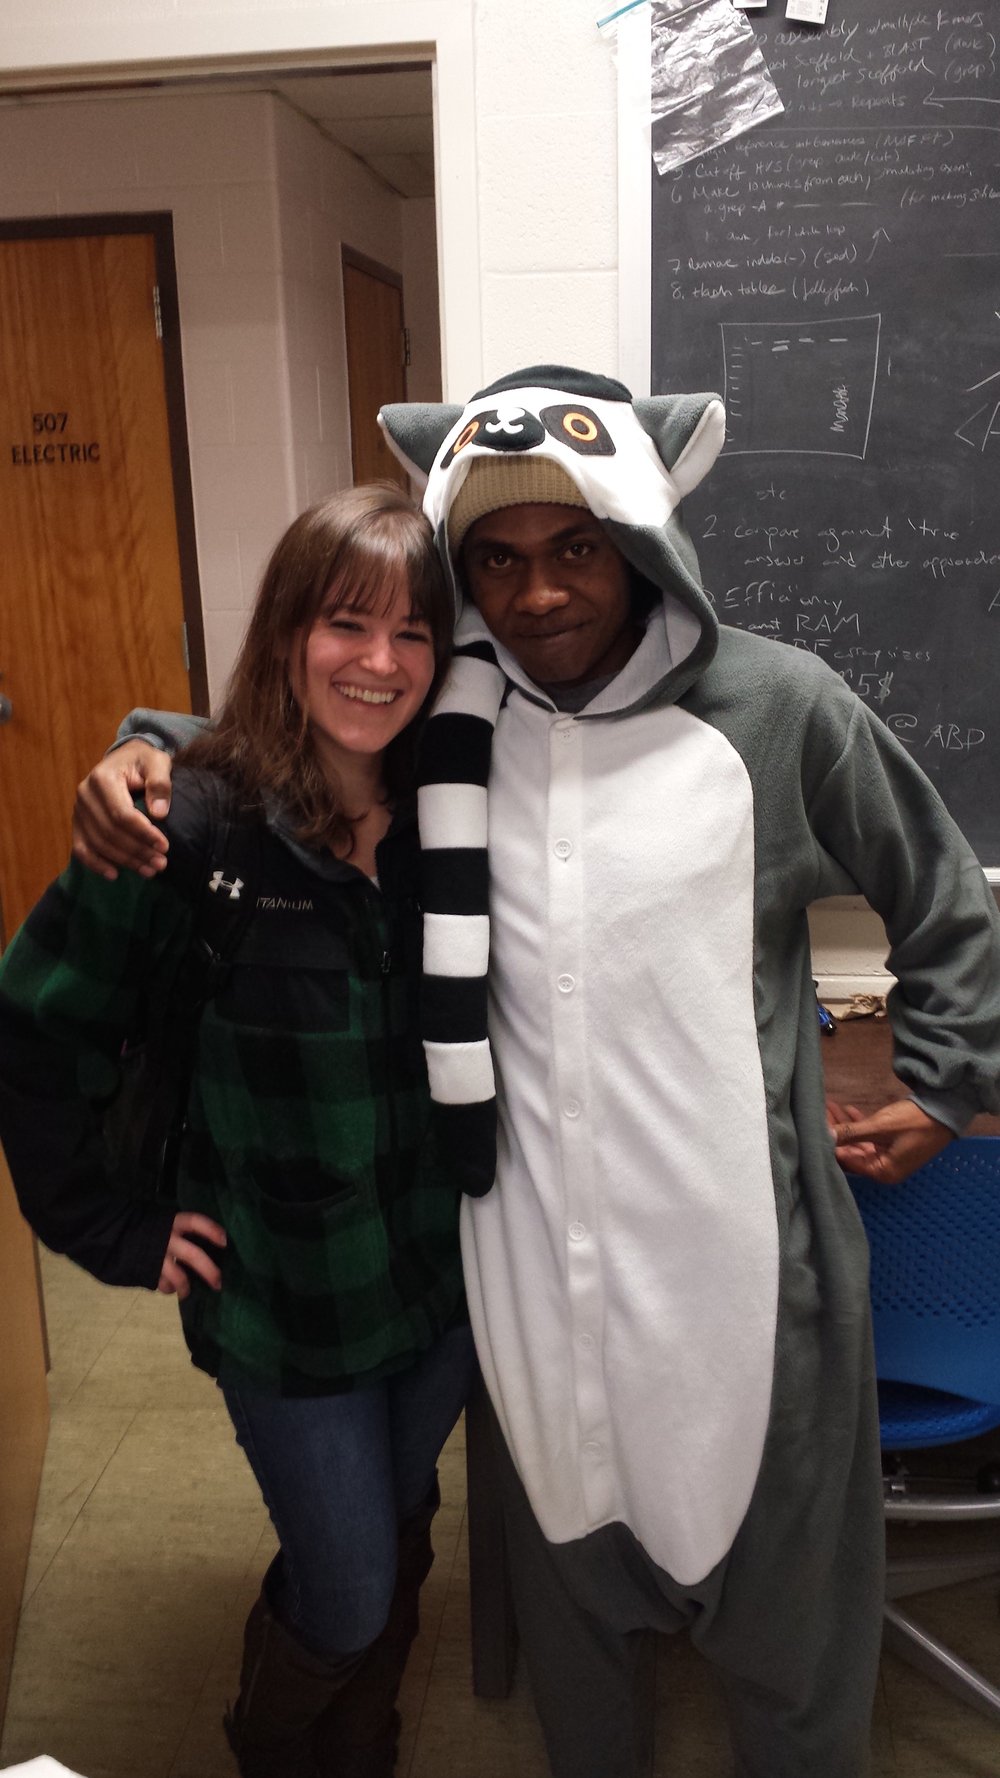 Graduate students Alexis Sullivan and Heritiana Randrianatoandro (as a ring-tailed lemur!) in their office.